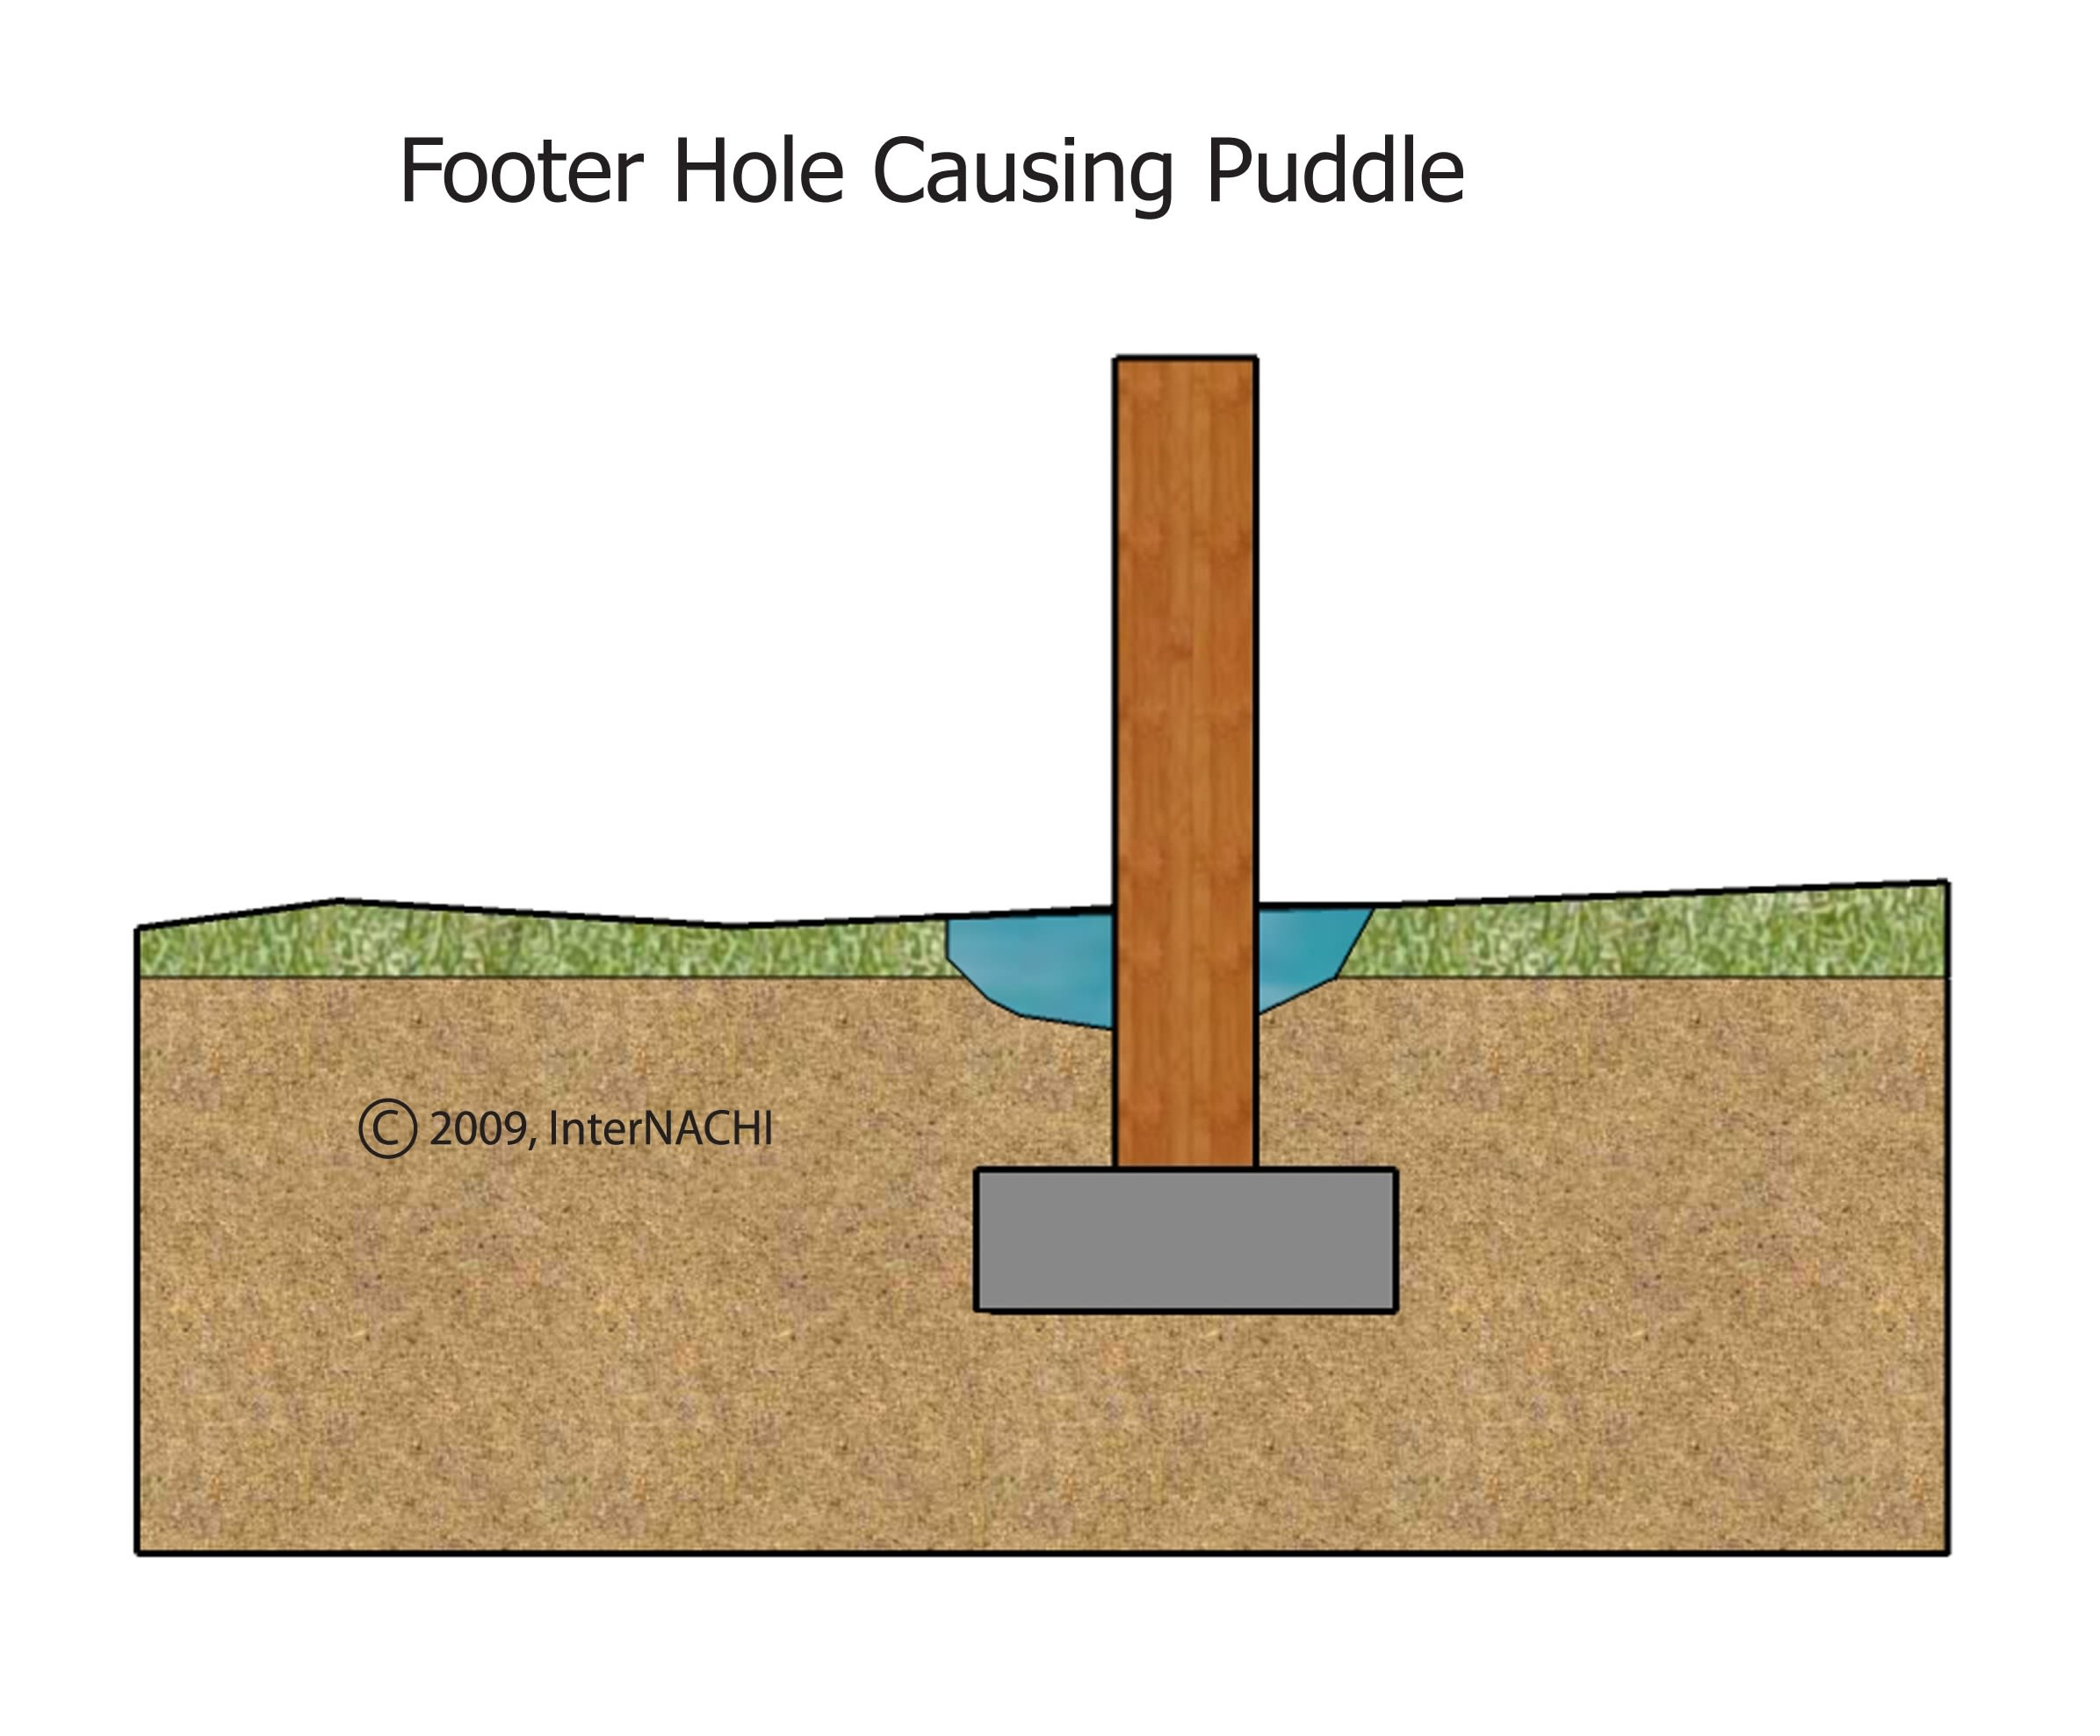 Footer hole causing puddle.